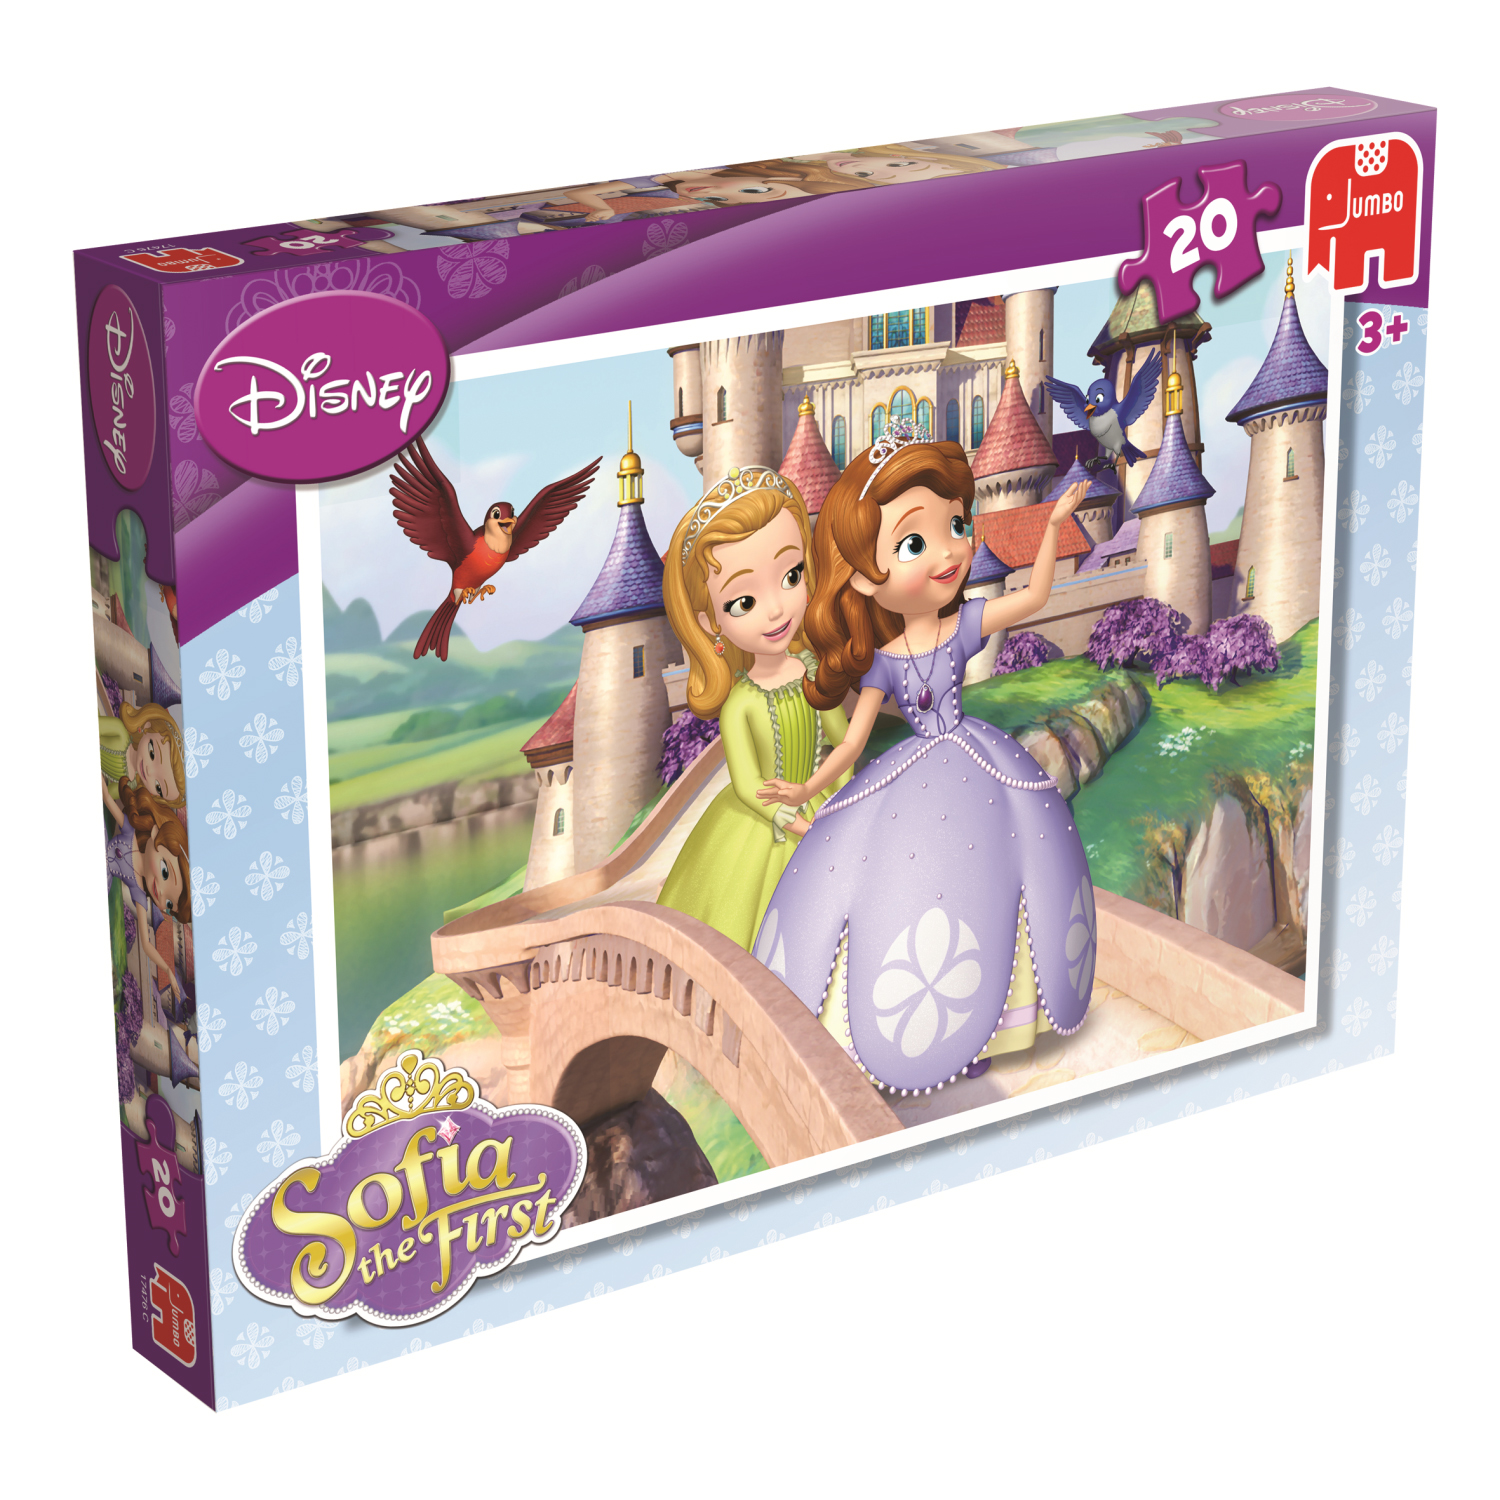 sofia the first jigsaw puzzle